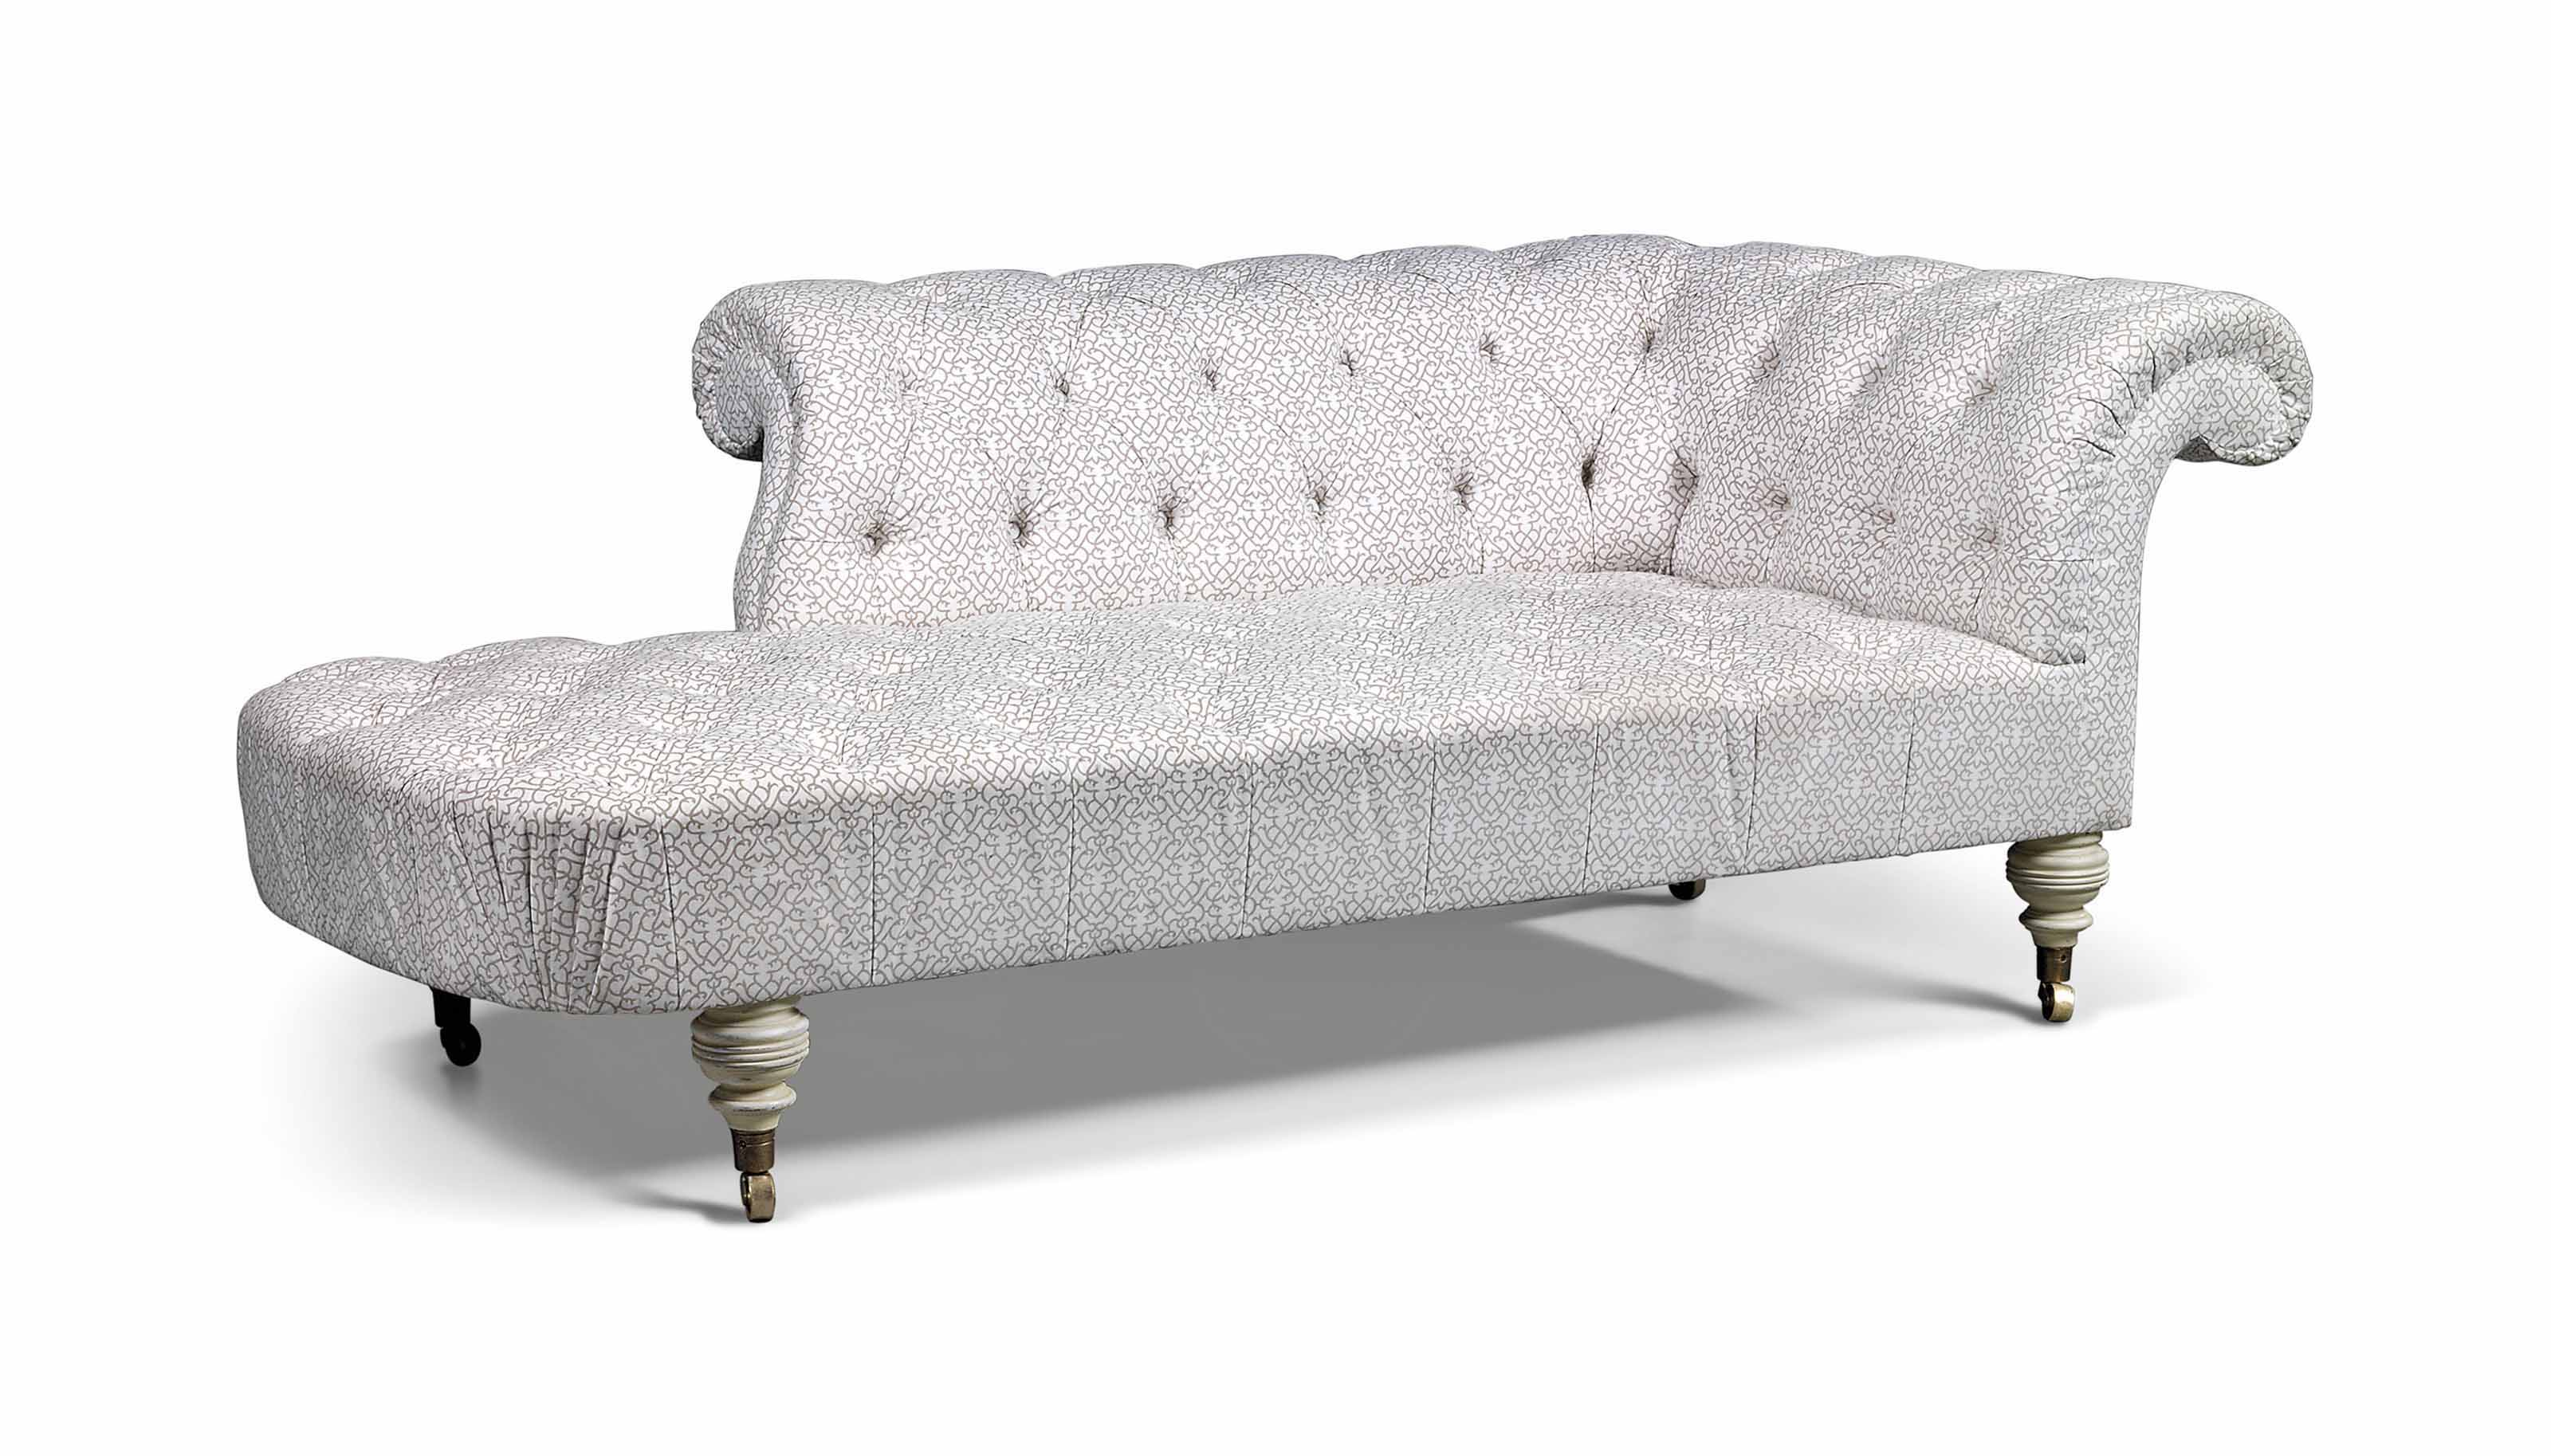 A WHITE PAINTED CHESTERBED CHAISE LONGUE BY HOWE MODERN